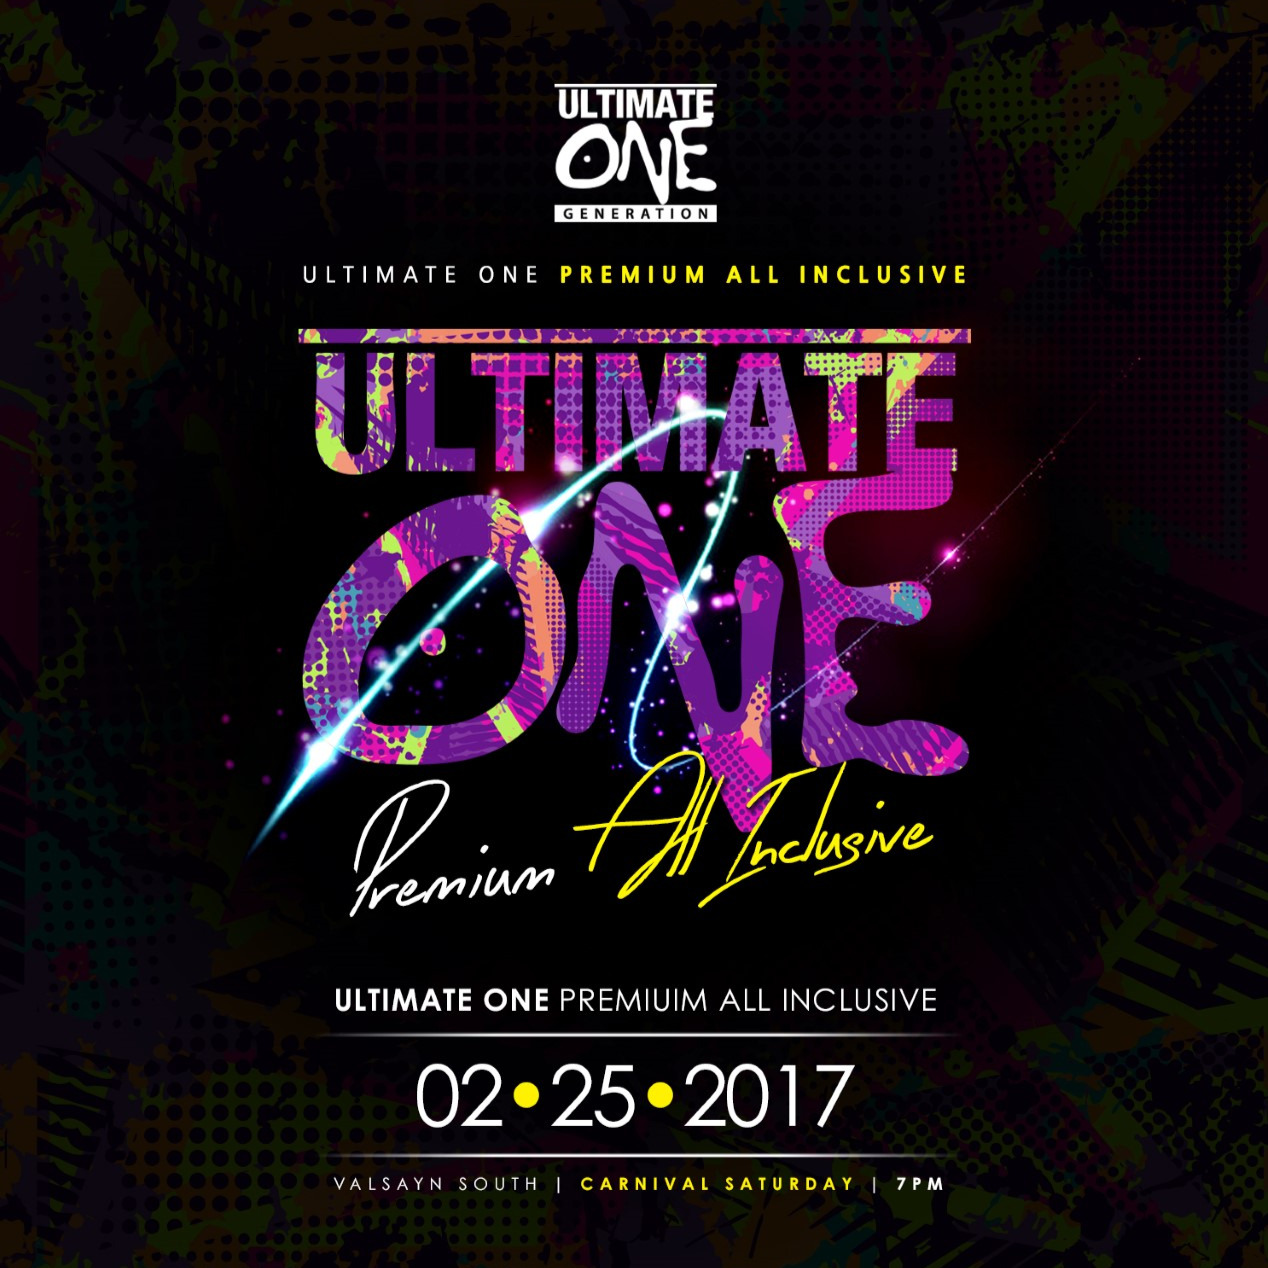 ULTIMATE ONE PREMIUM ALL INCLUSIVE